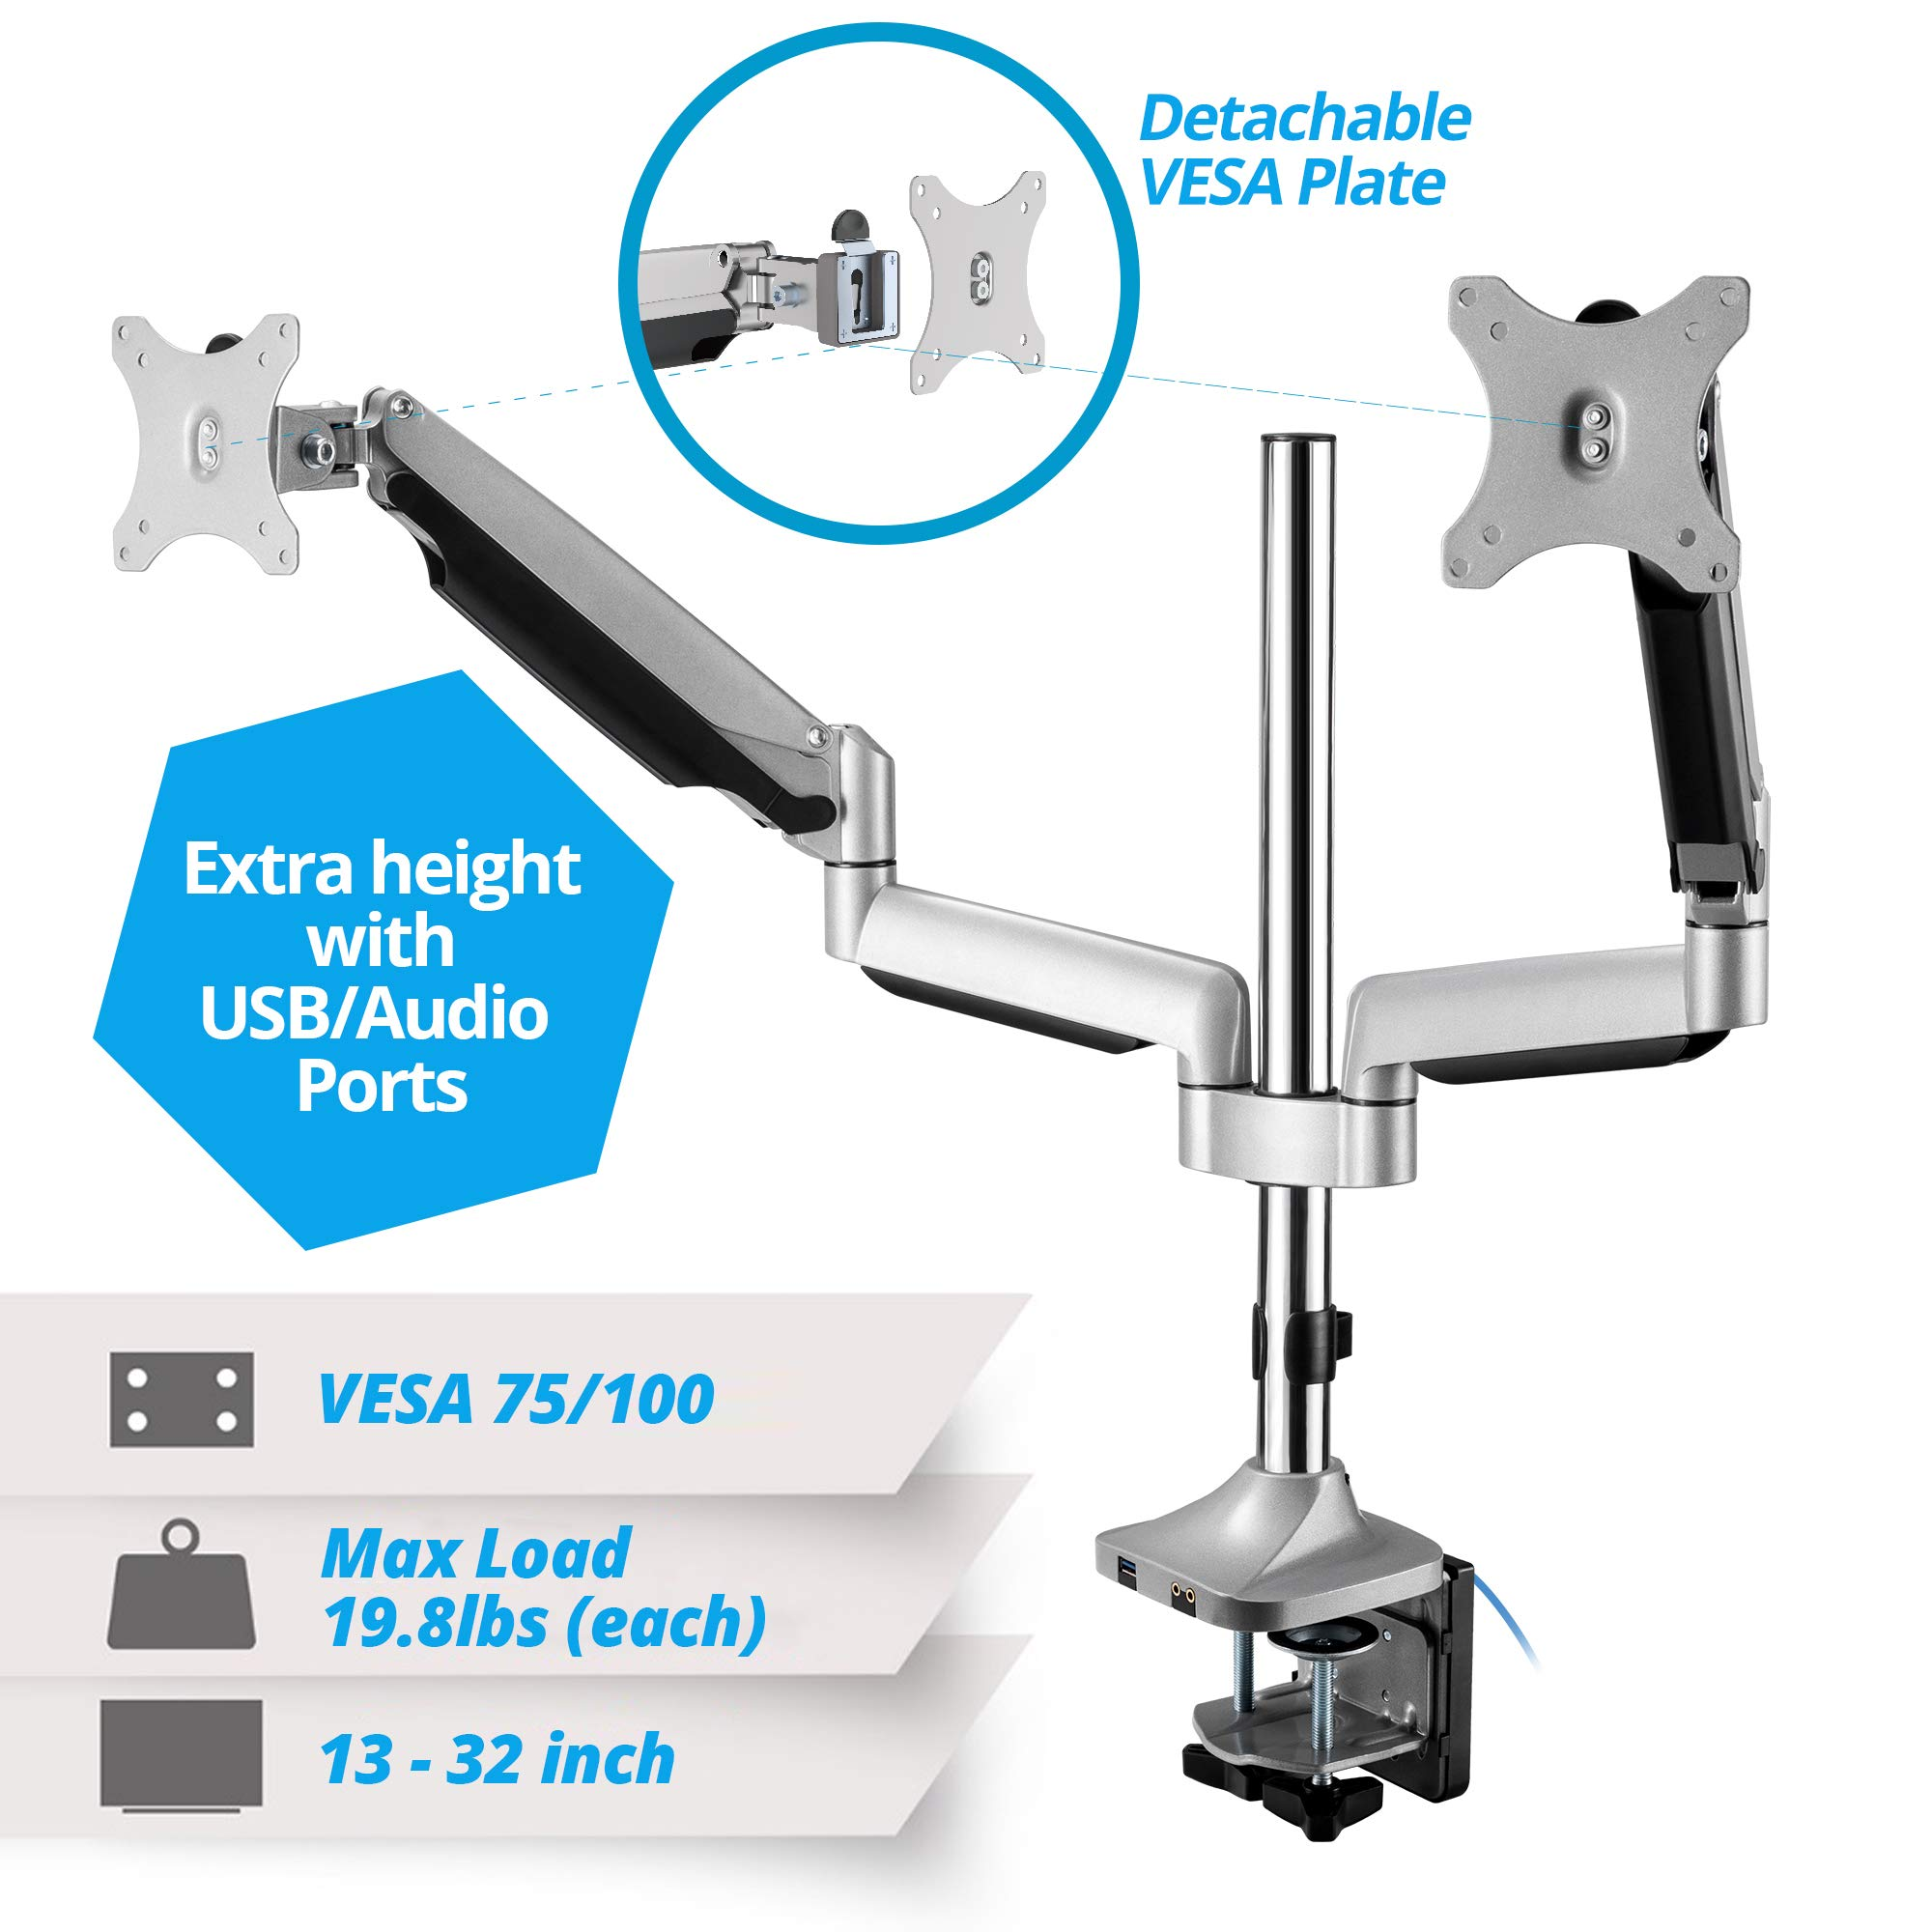 AVLT-Power Extra Height Adjustable Dual Monitor Mount with Two Gas Spring Arms Desk Stand, USB and Audio Ports - Aluminum, Heavy Duty Holds 13'' to 32'' Screens, Up to 19.8 lbs Each, VESA 75/100